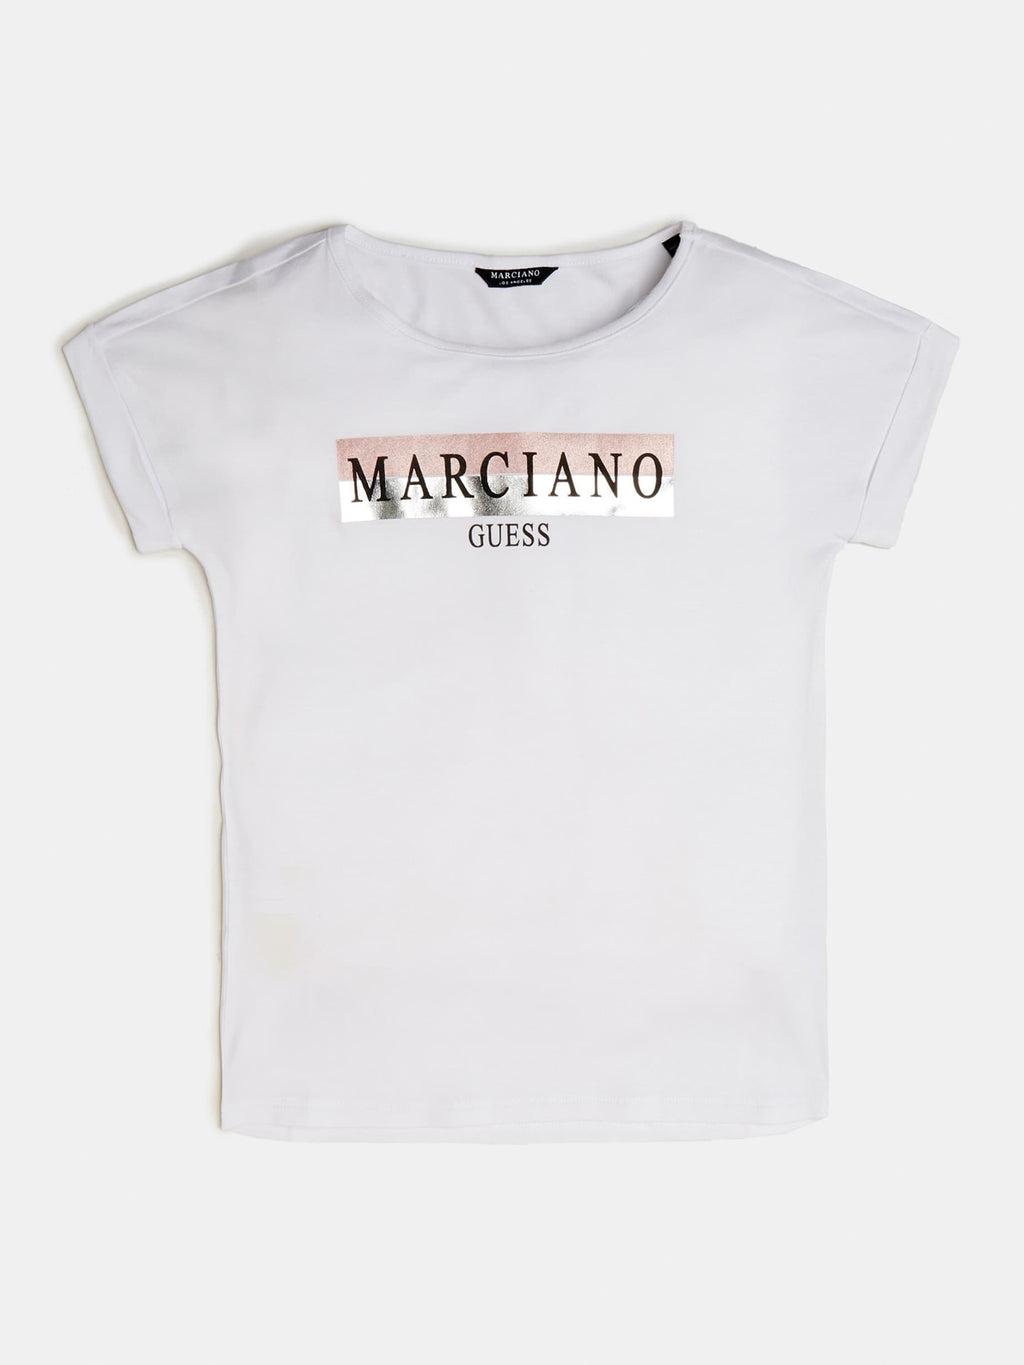 Marciano Foil T-shirt - MamaSmile